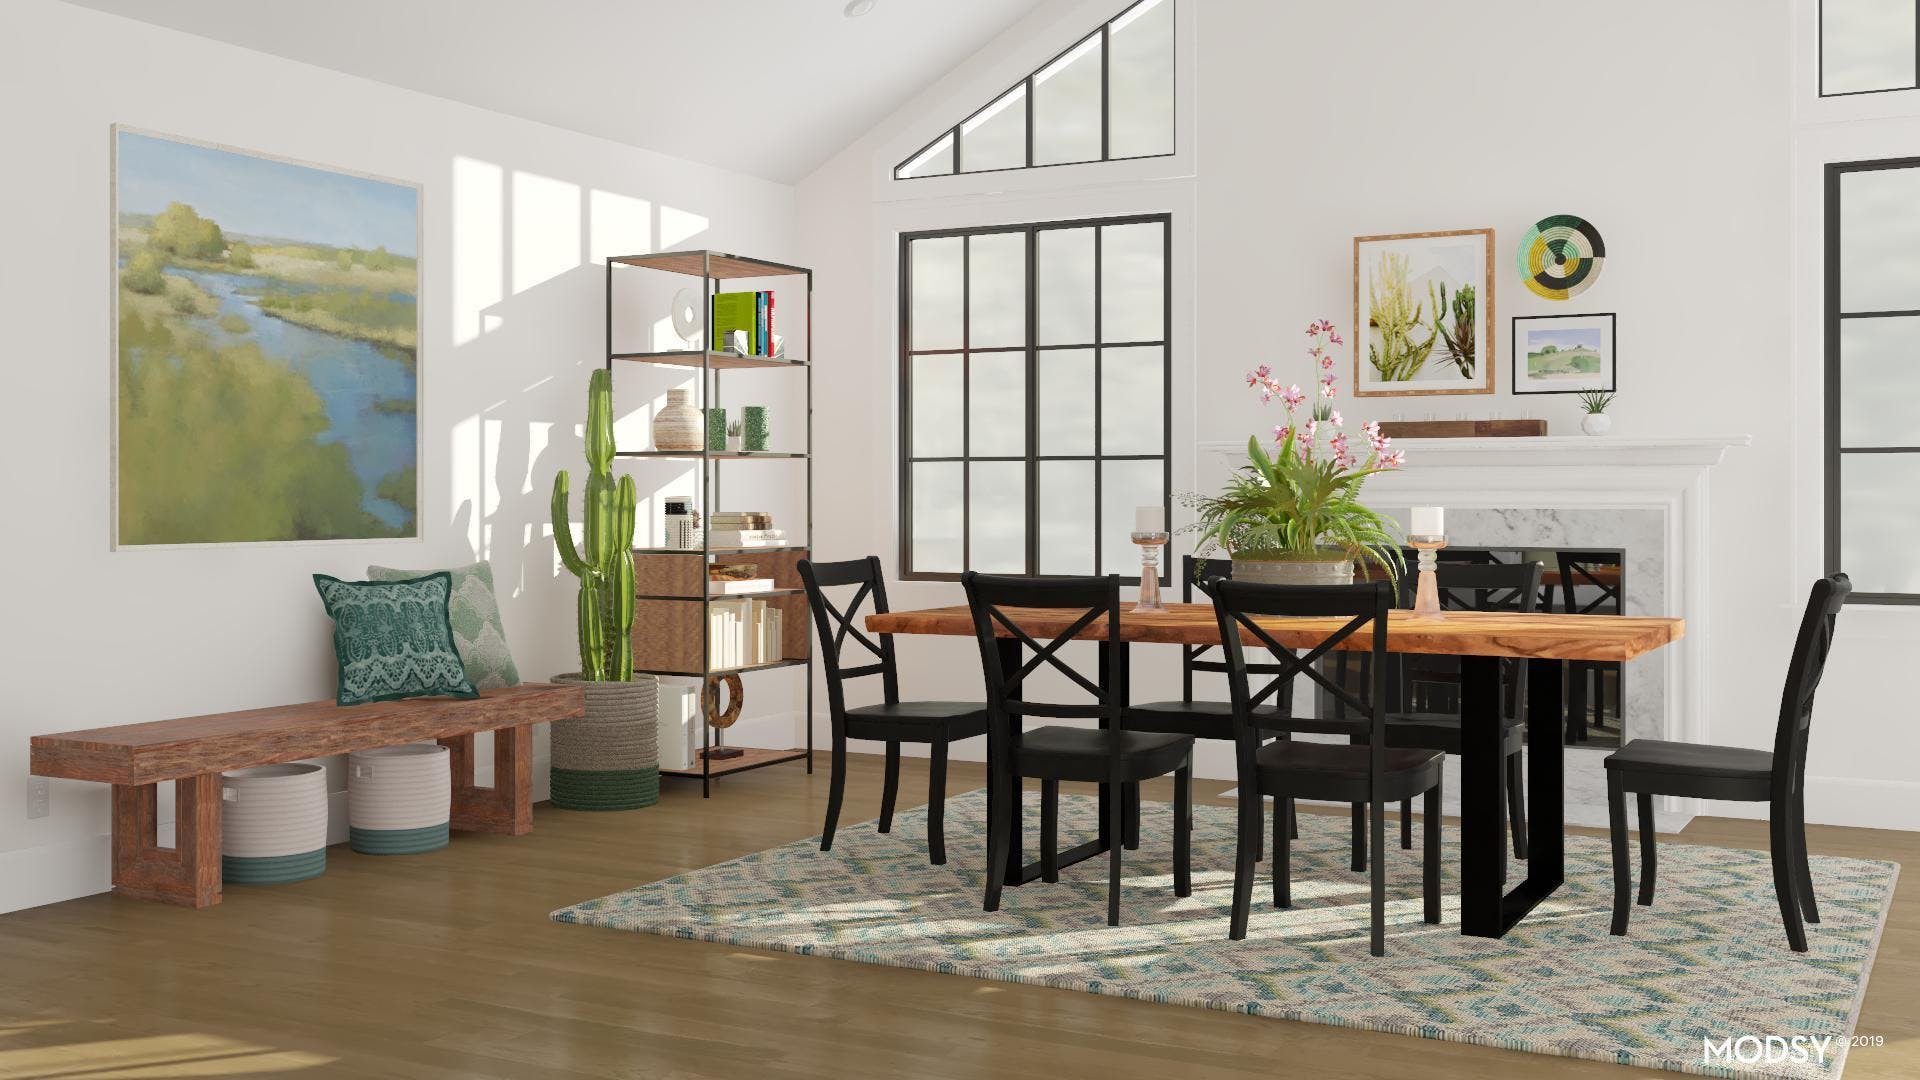 Modern Rustic Dining Room in Green